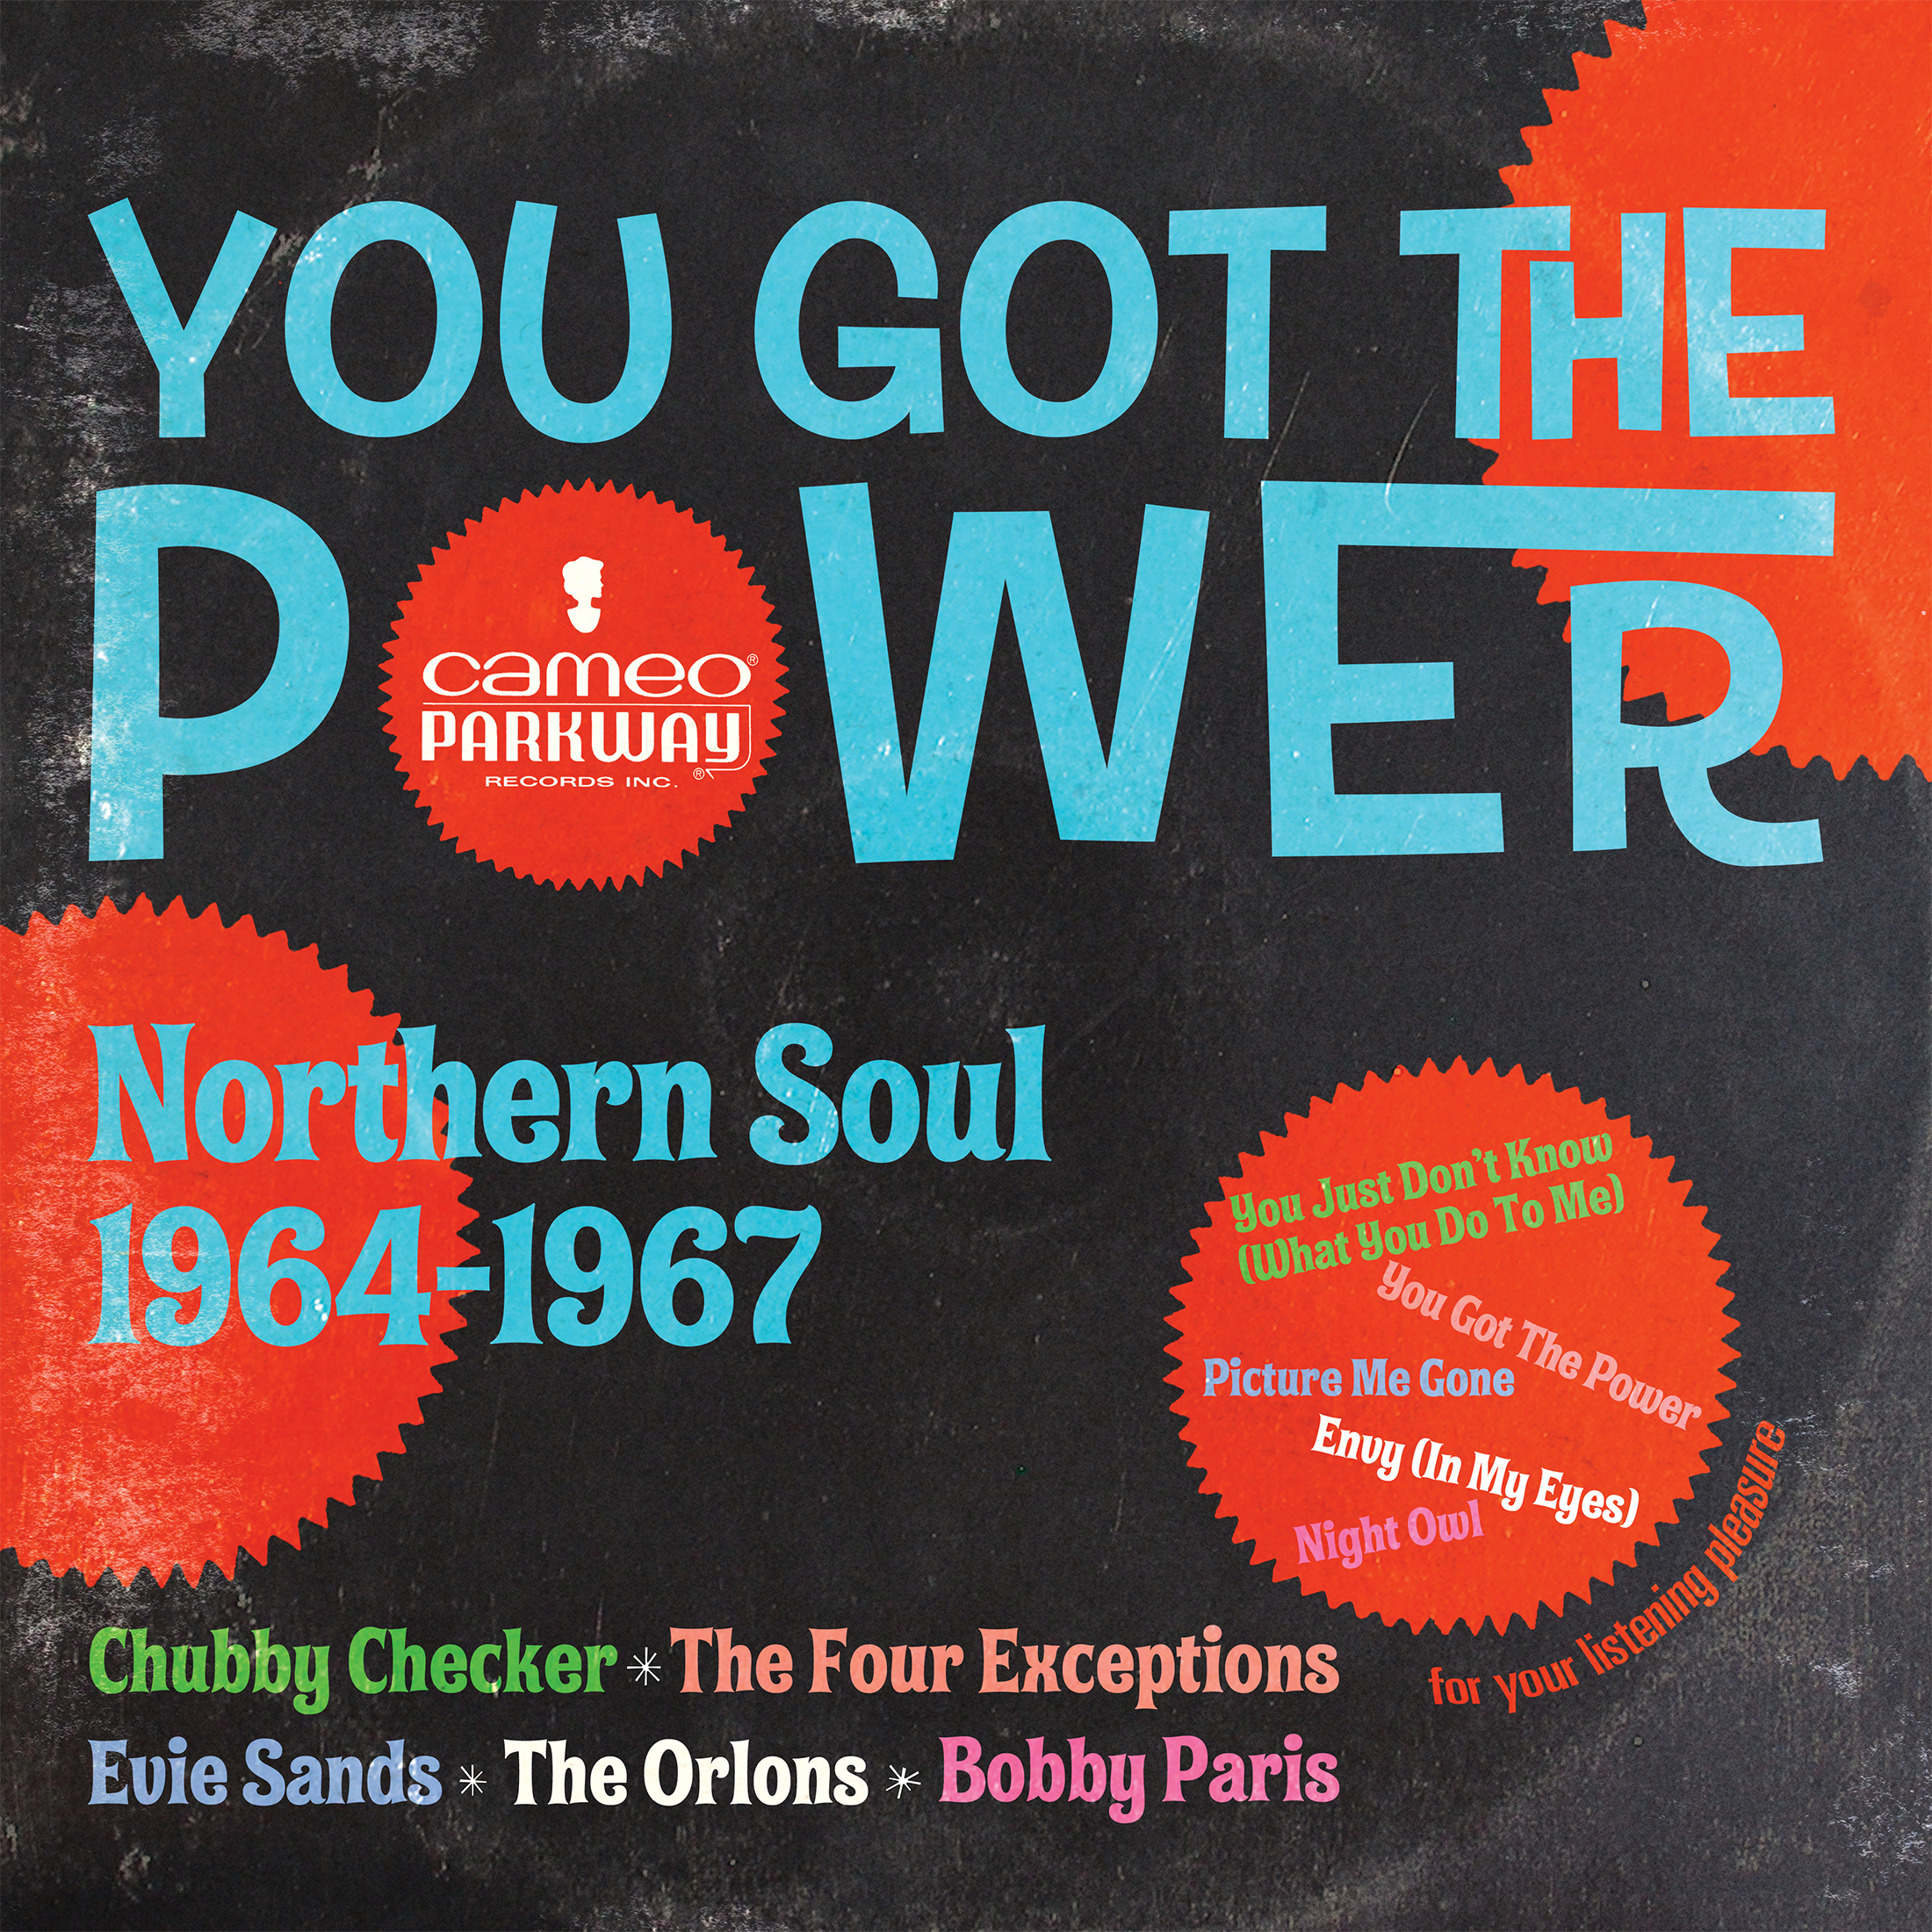 You Got The Power: Cameo Parkway Northern Soul 1964-1967